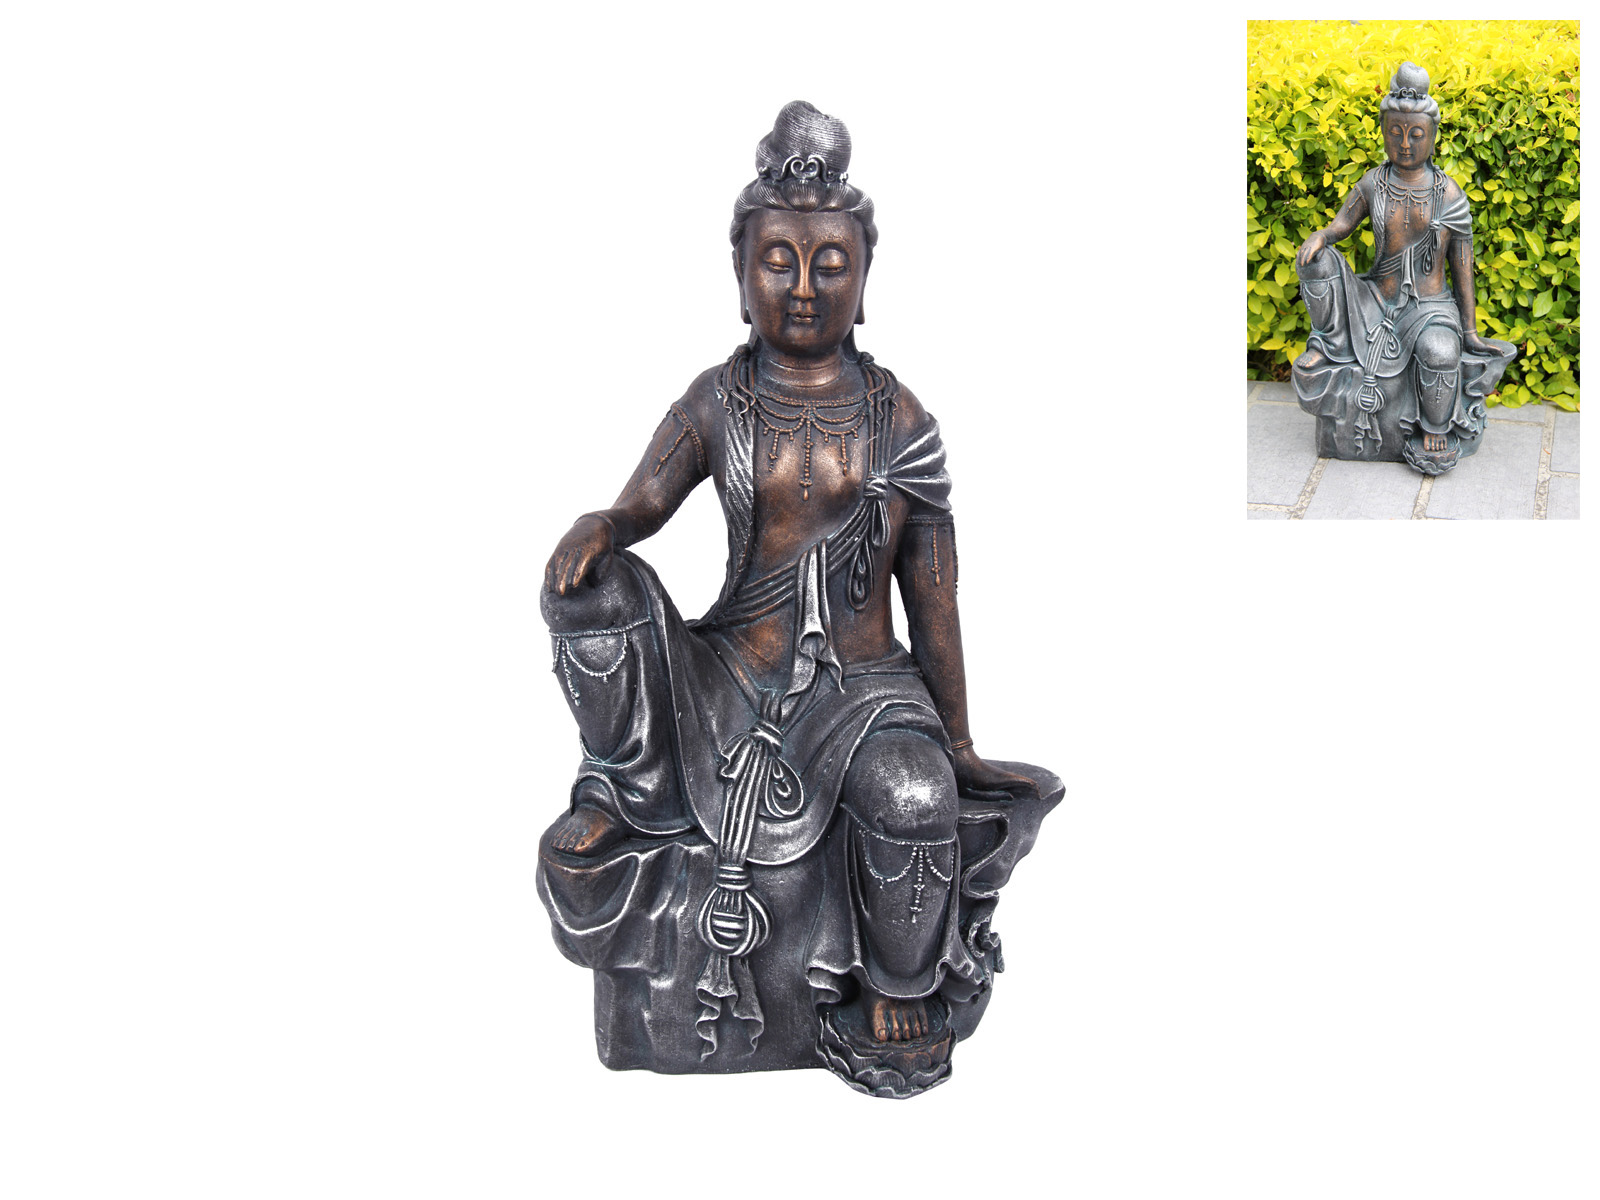 47cm guan yin buddha resting statue rustic meditating zen ebay. Black Bedroom Furniture Sets. Home Design Ideas